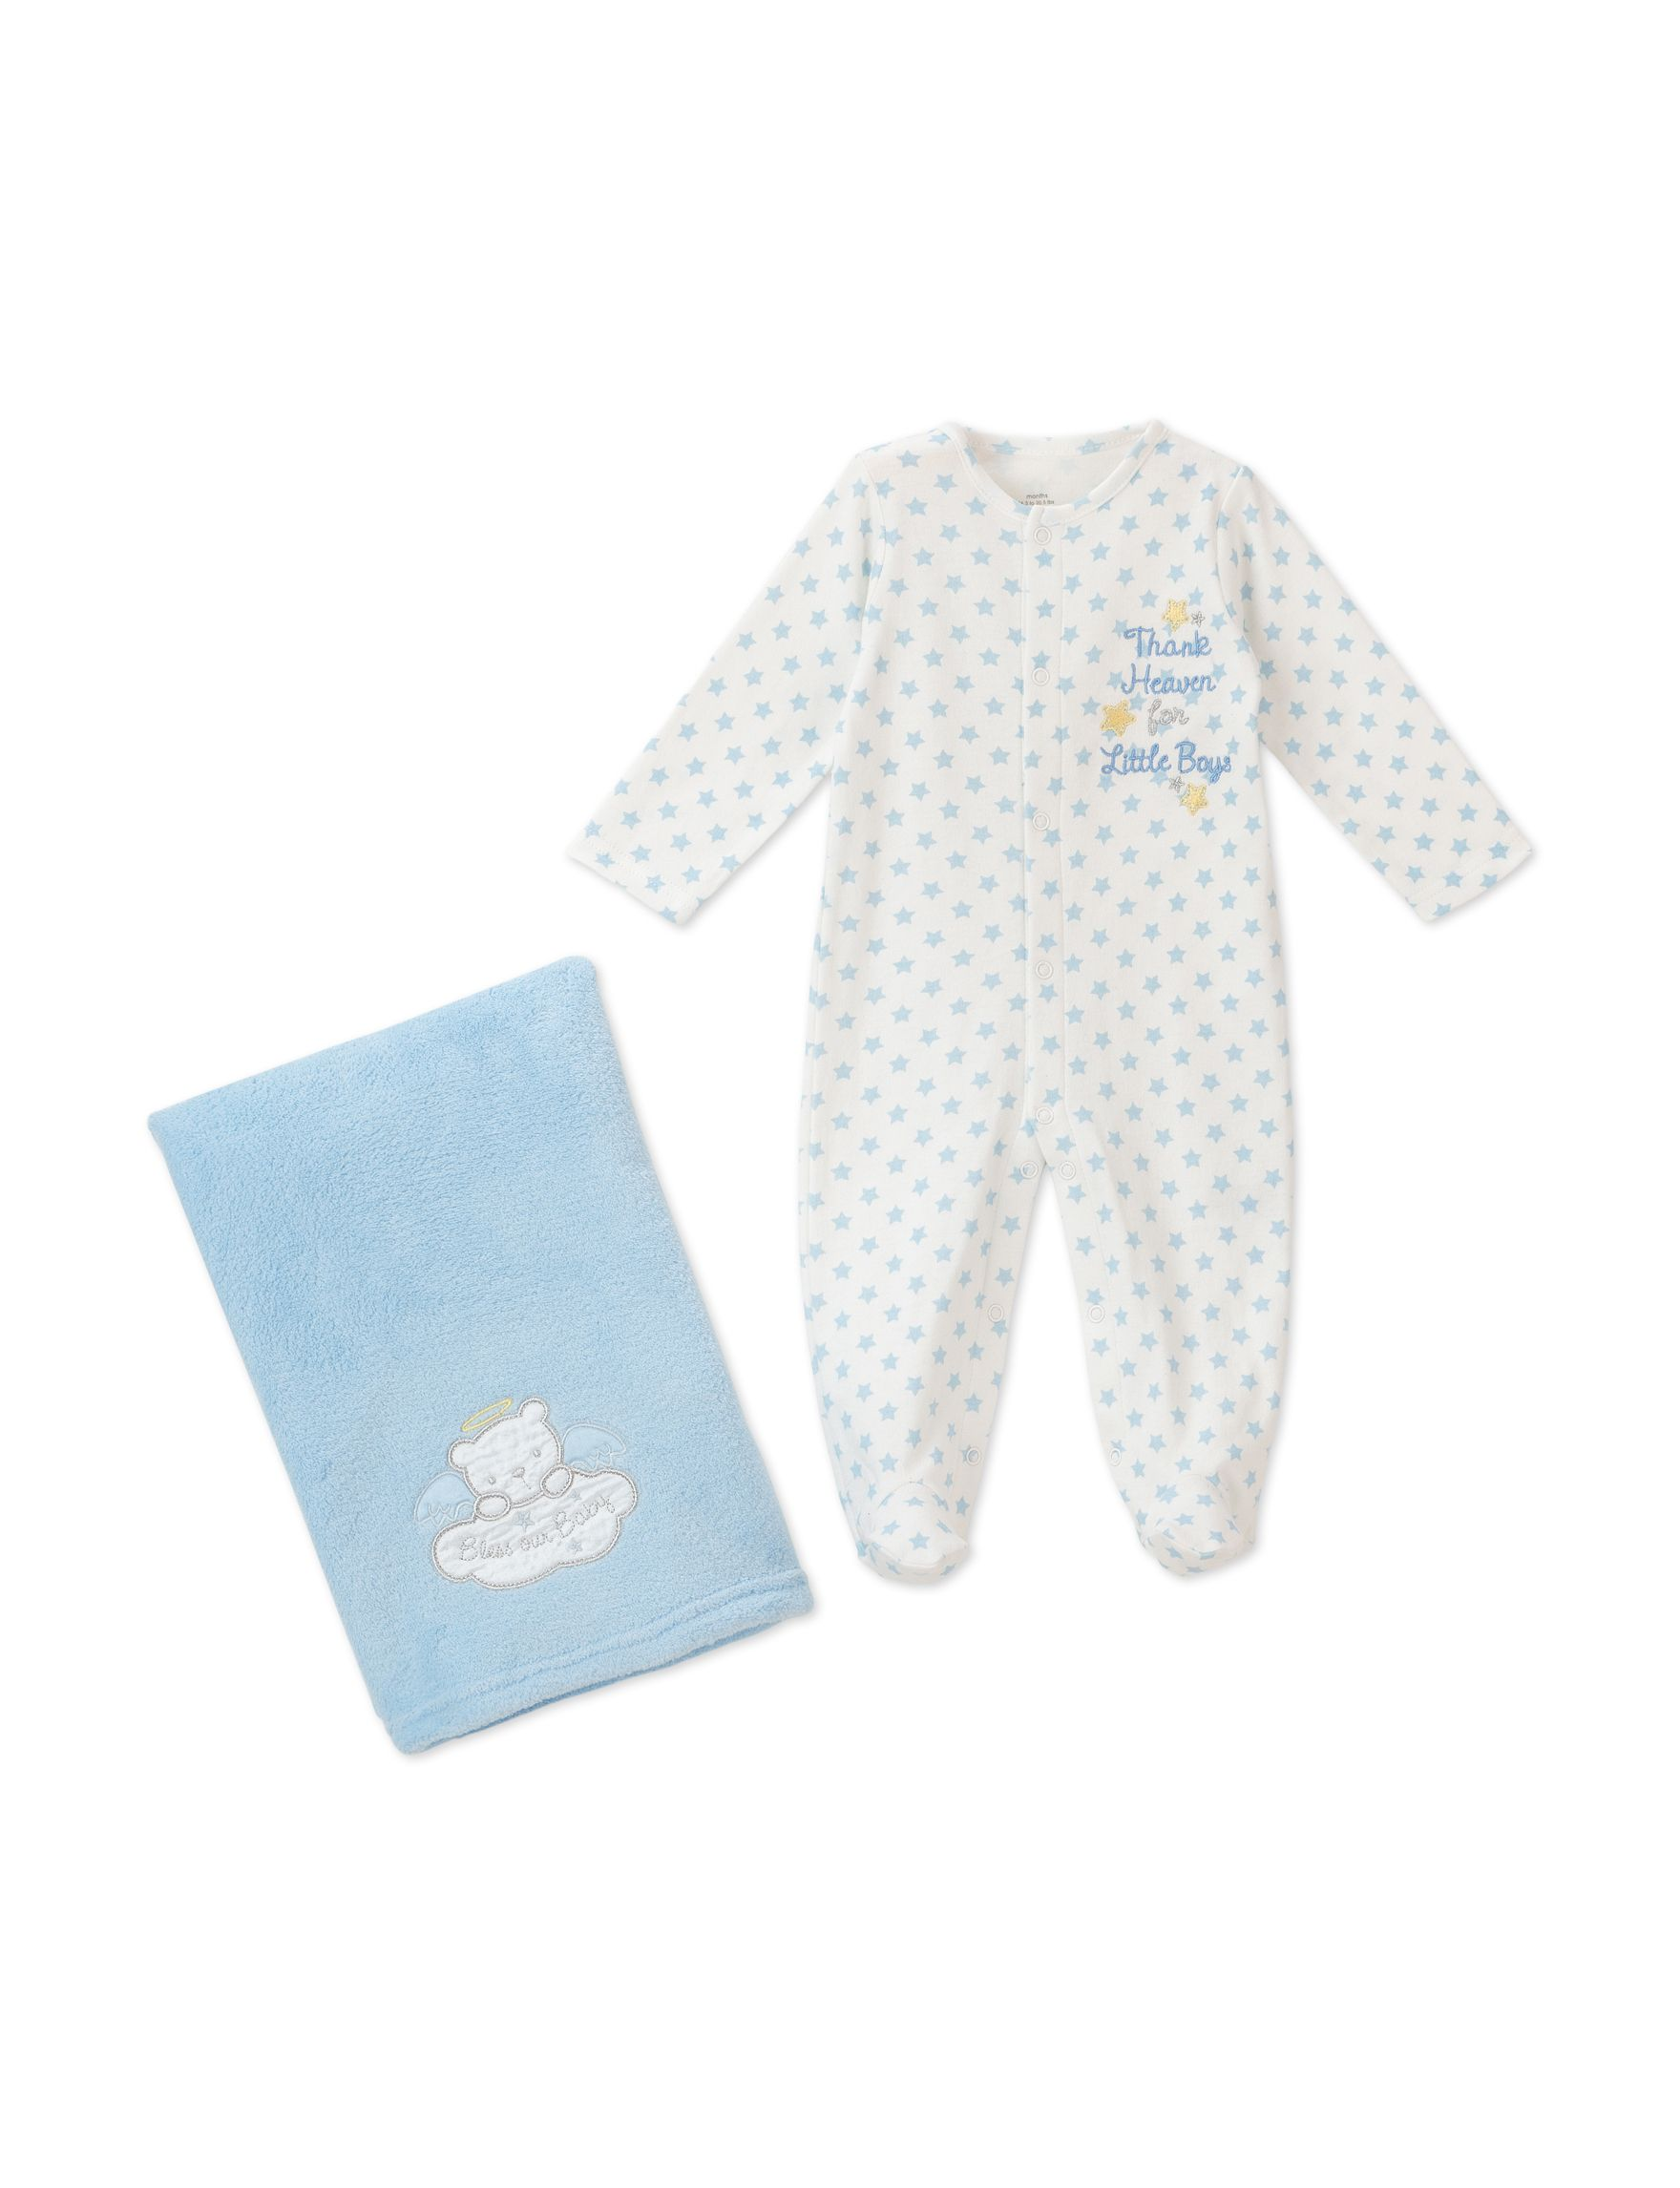 Shop today for Baby Starters 2 pc Thank Heaven for Little Boys